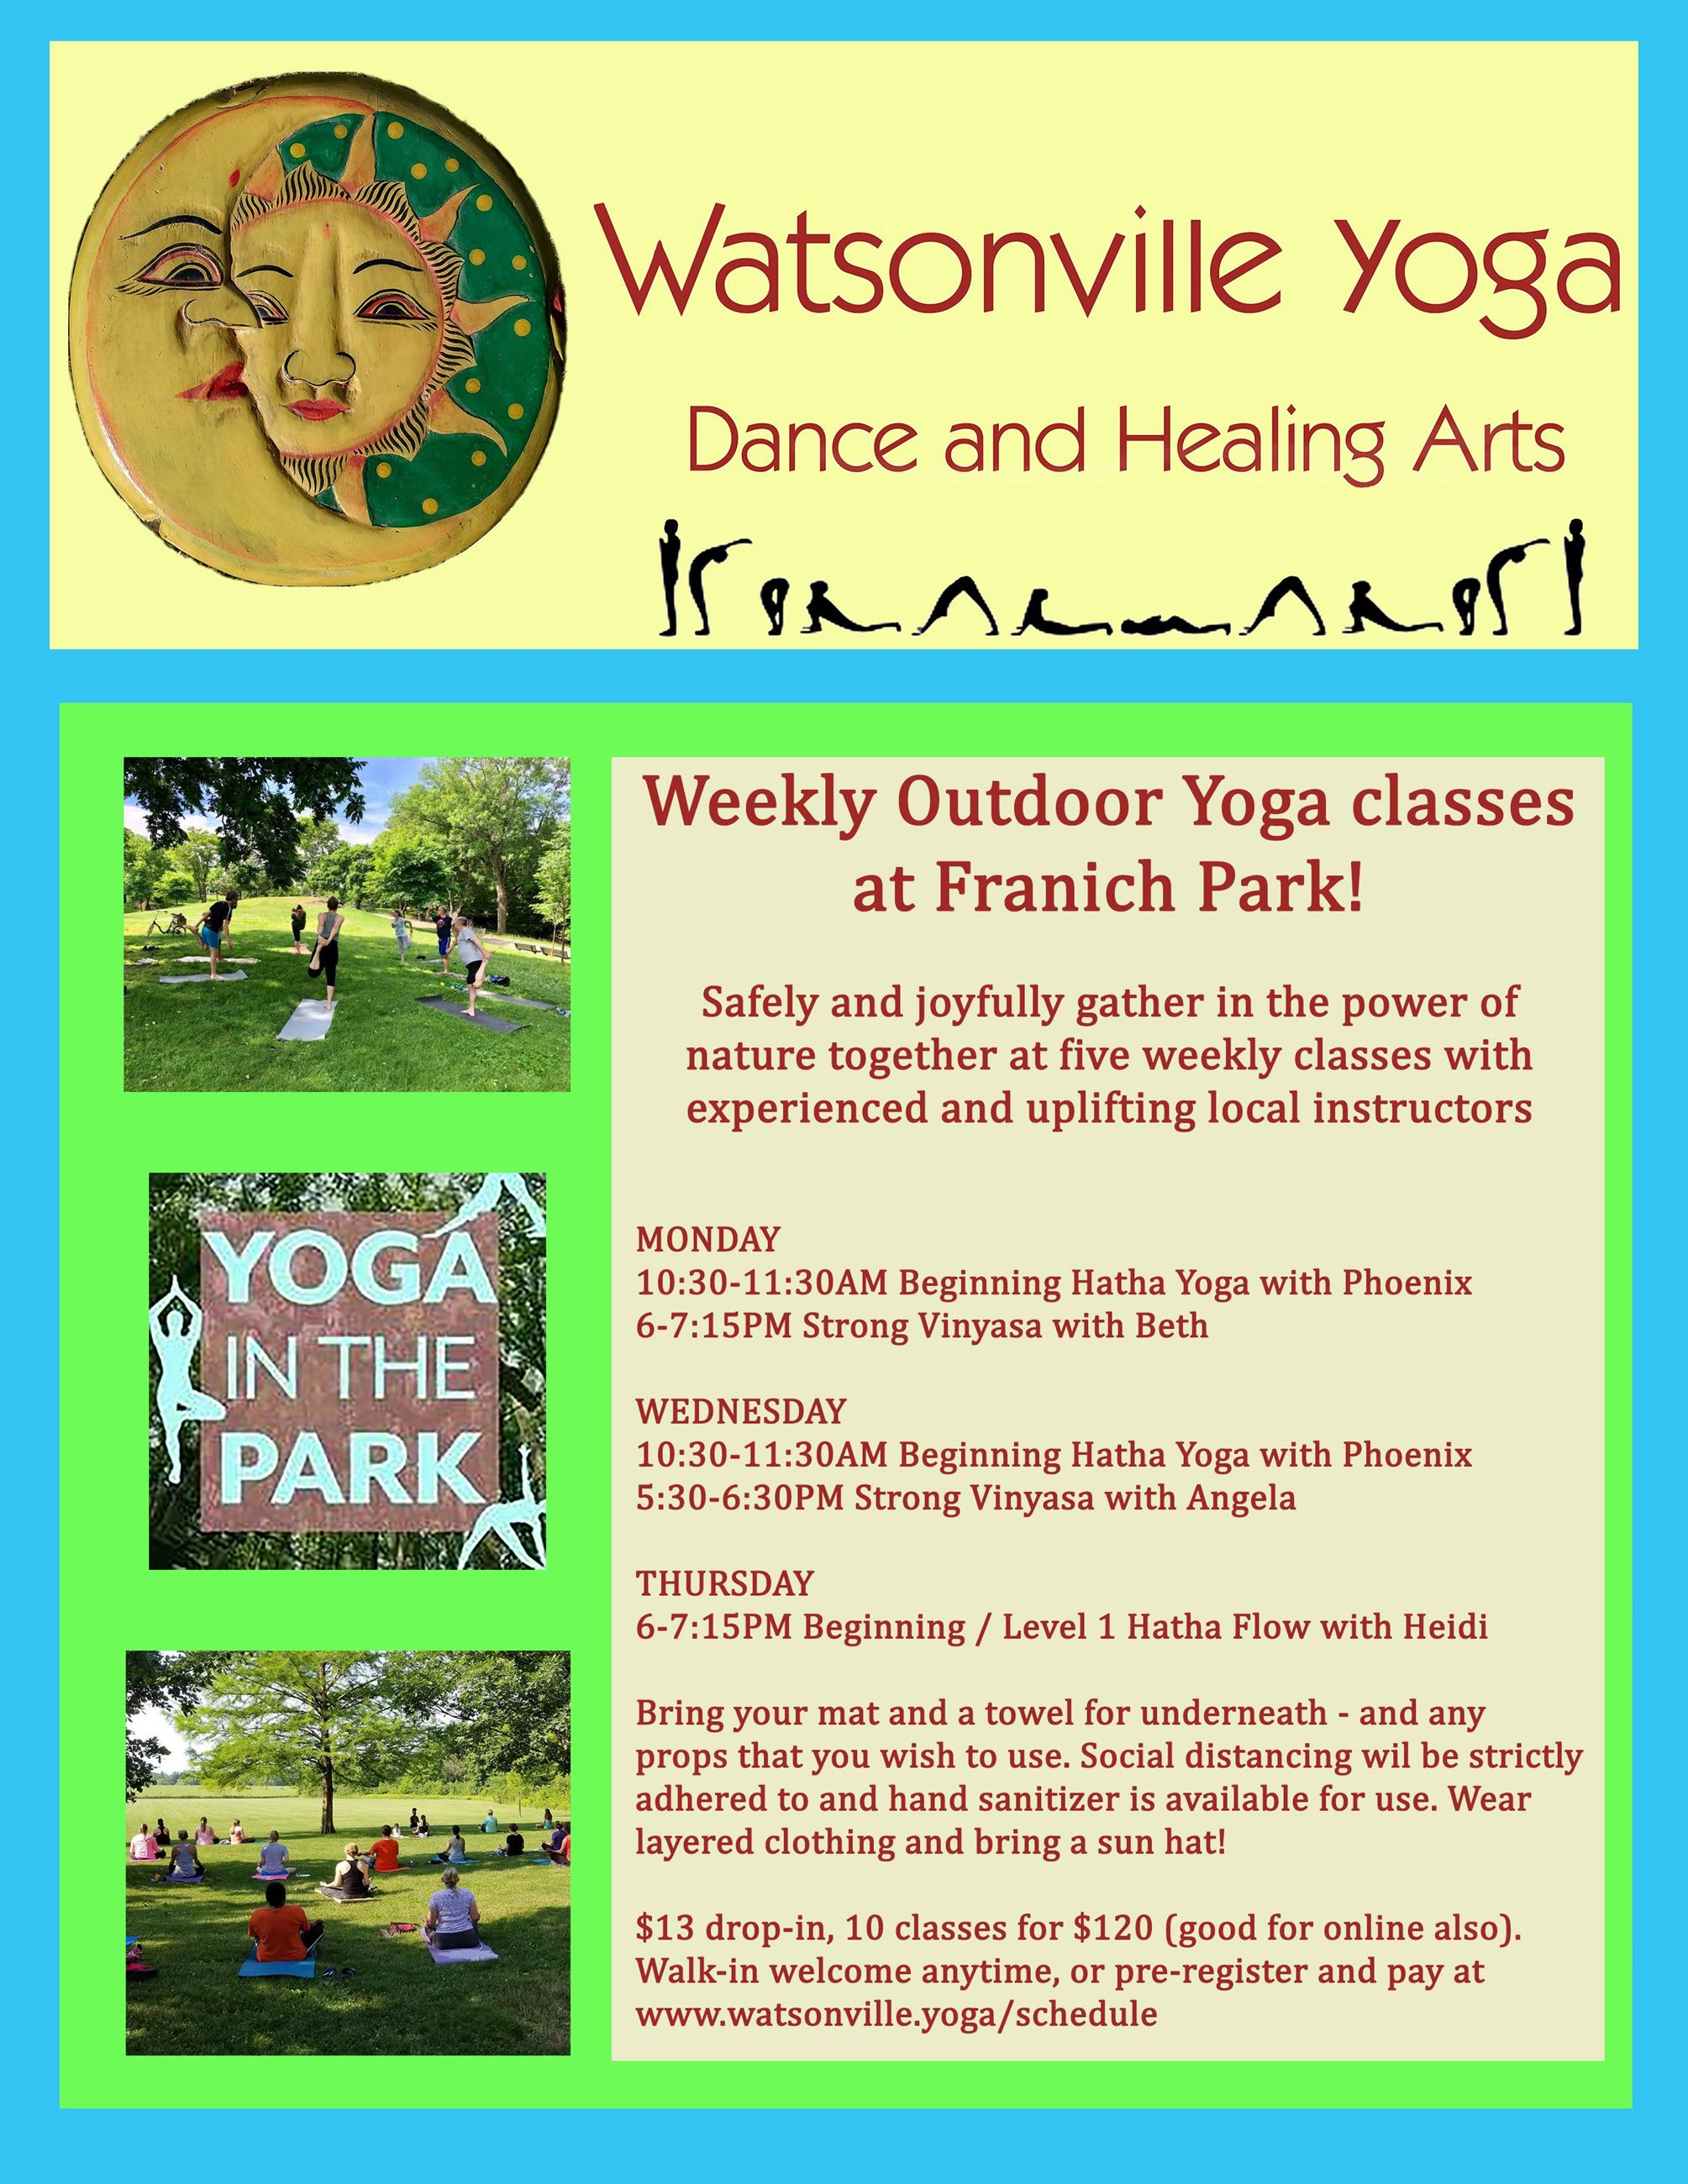 Watsonville Yoga in the Park 2020 Summer